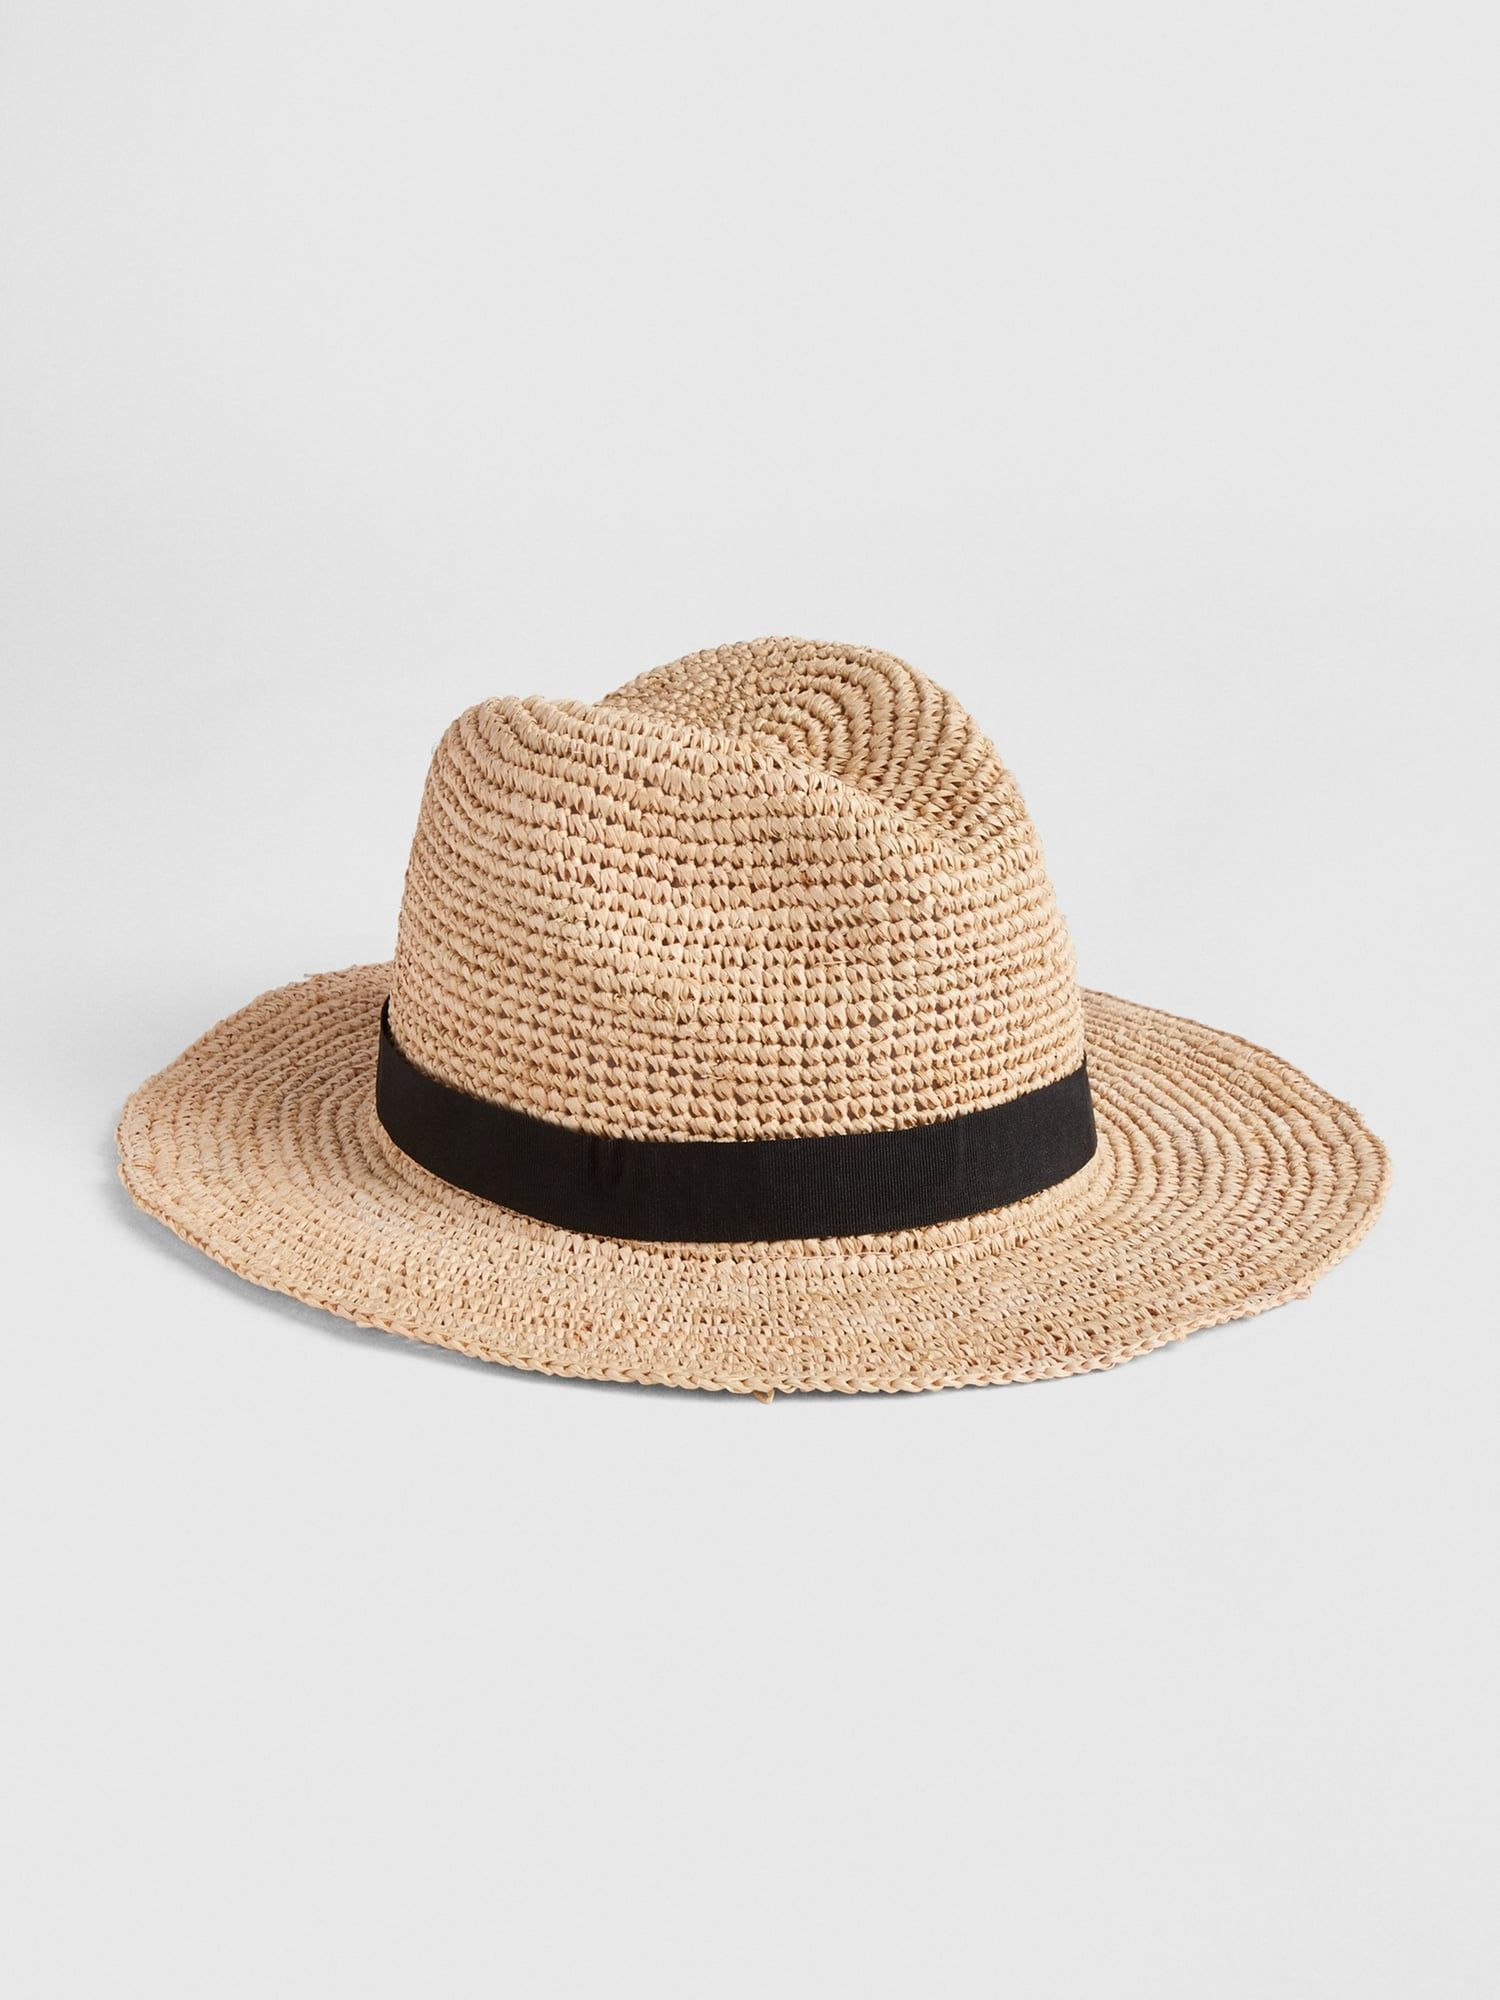 a230eec9 25 Best Sun Hats for Summer 2019 - Floppy, Woven Straw, More